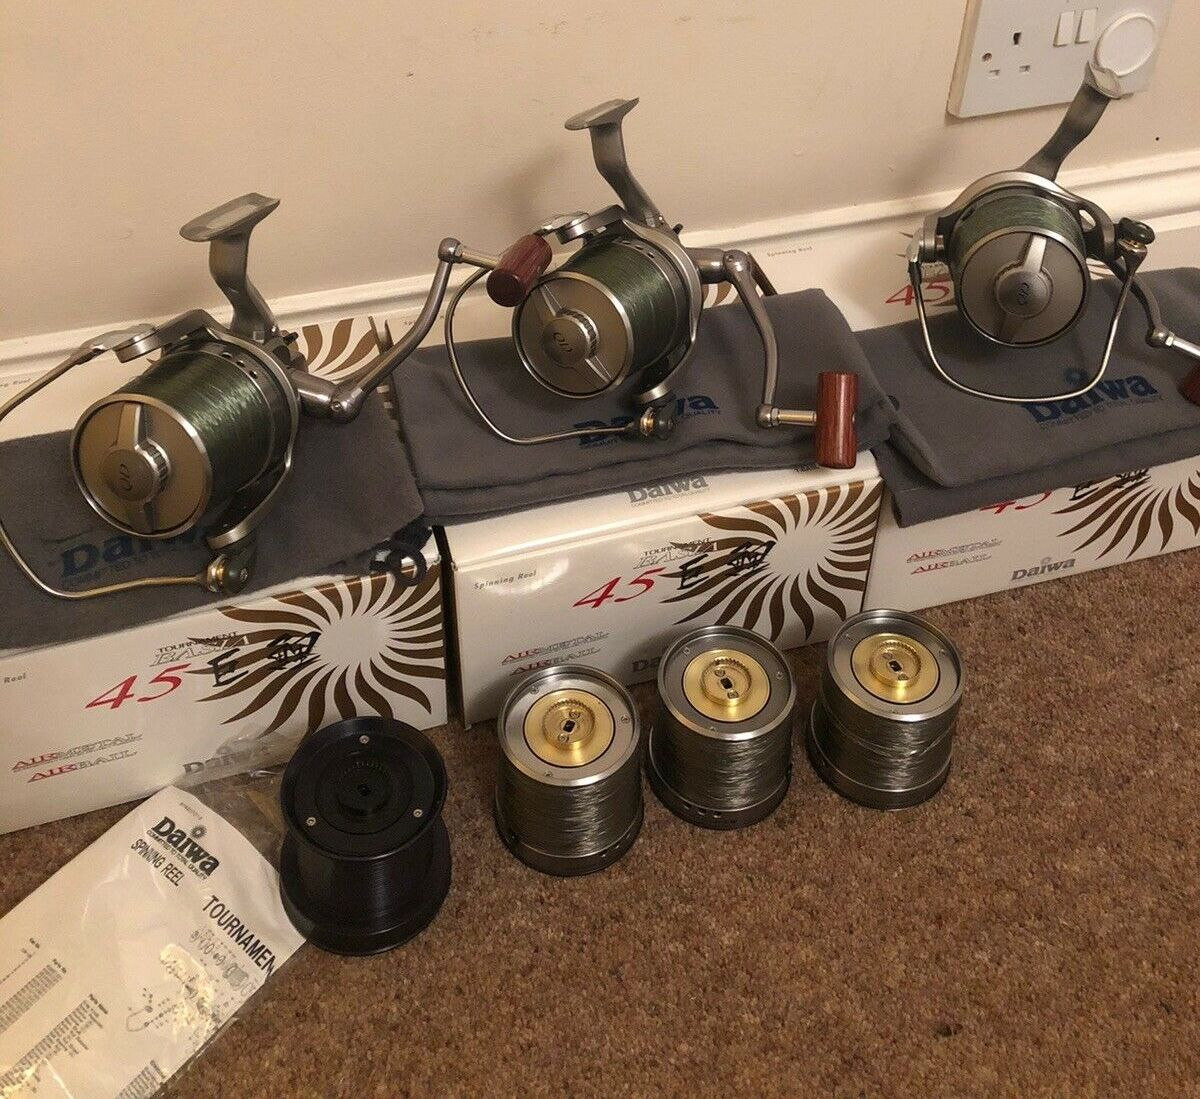 Ad - Daiwa Basia Tournament 45 QD x 3 On eBay here -->> https://t.co/MueSHt625p  #<b>Carp</b>f